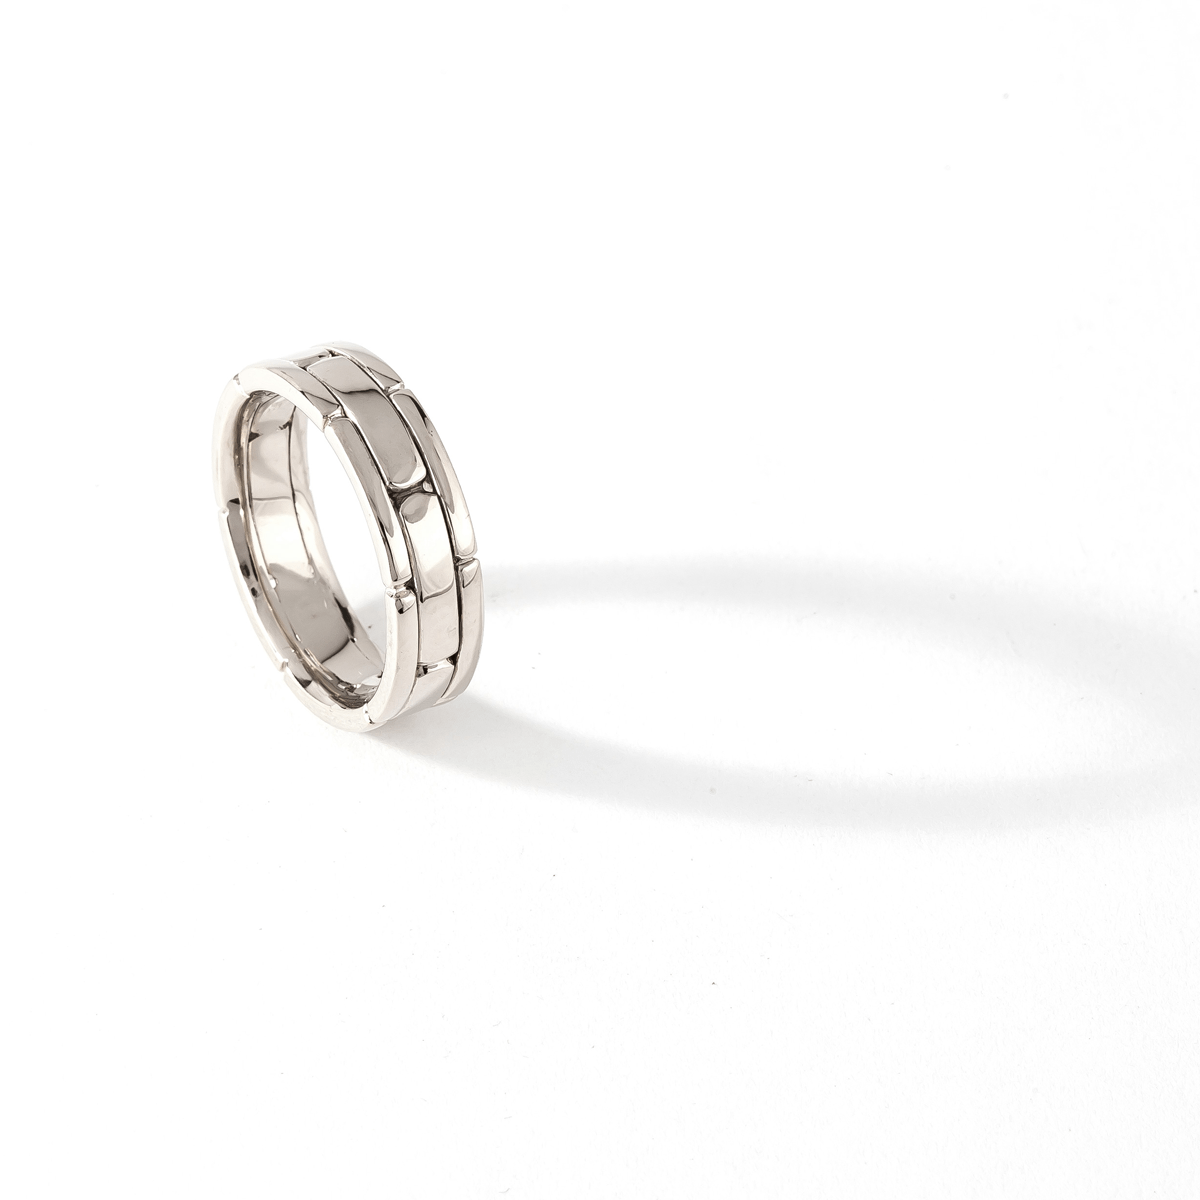 CHRIS AIRE WEDDING BAND - WHITE GOLD